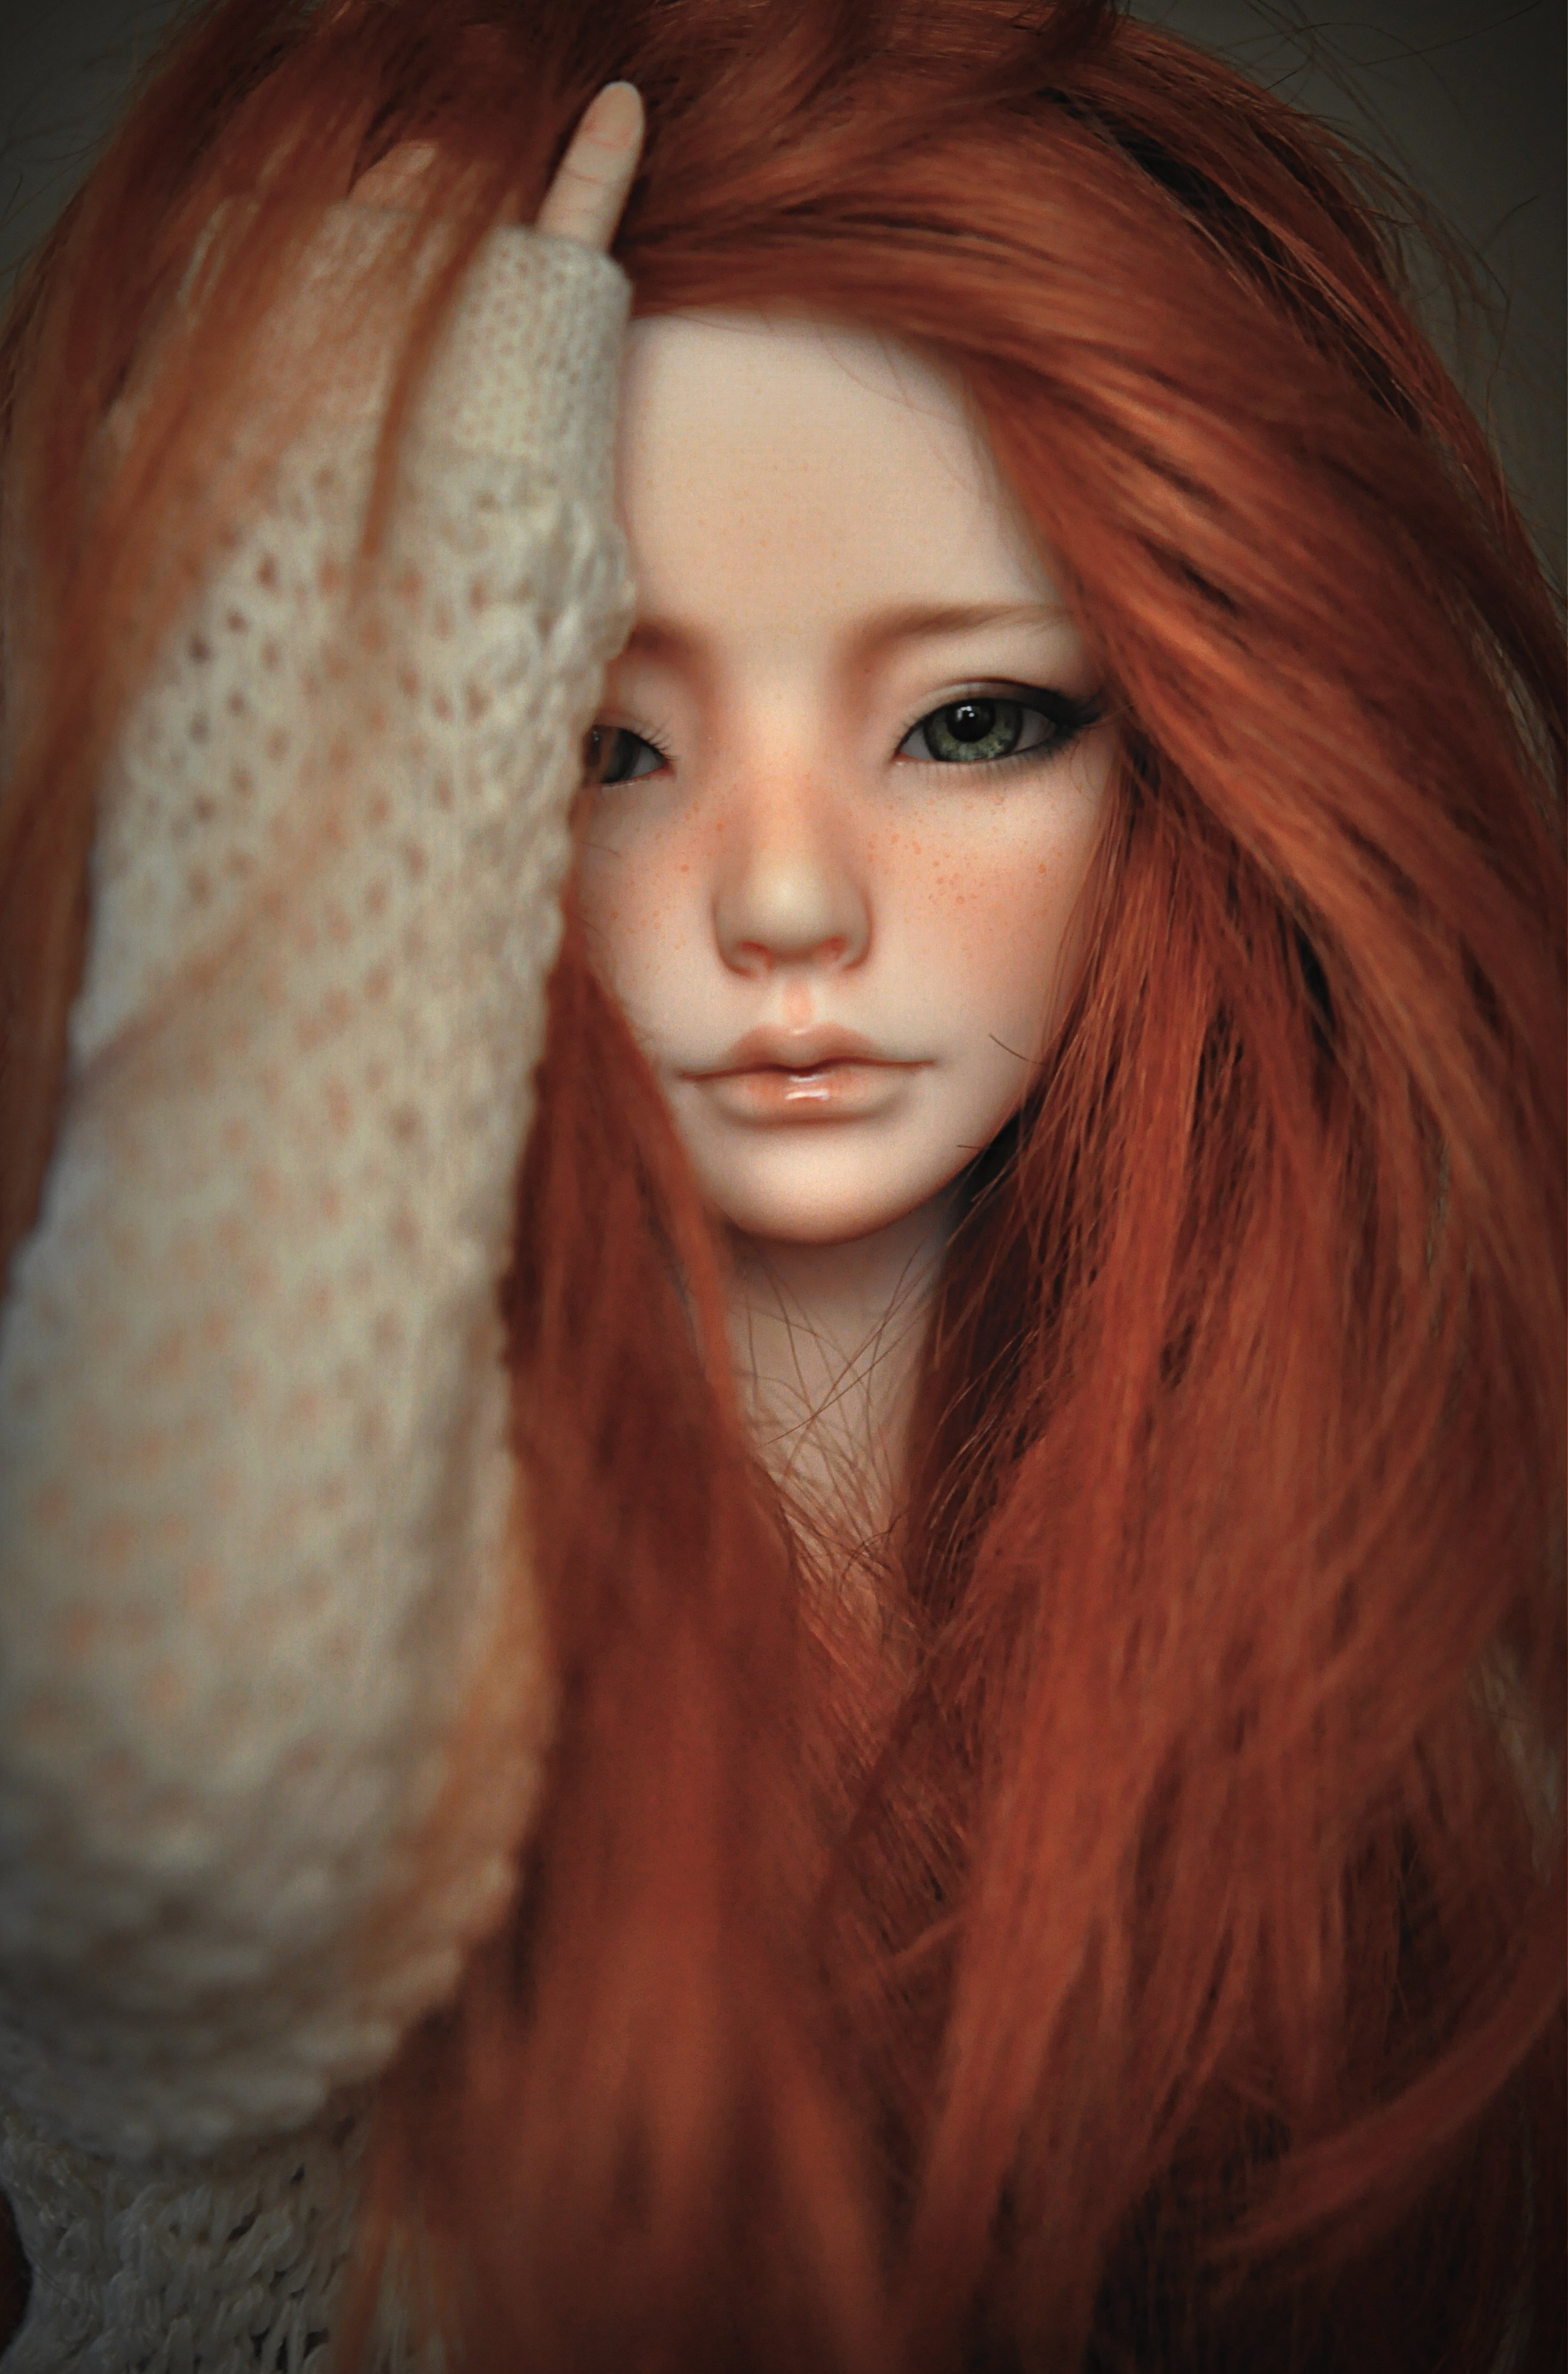 Cute Girl Wallpaper For Facebook Profile Doll Toys Baby Girl Beauty Long Hair Cute Red Wallpaper